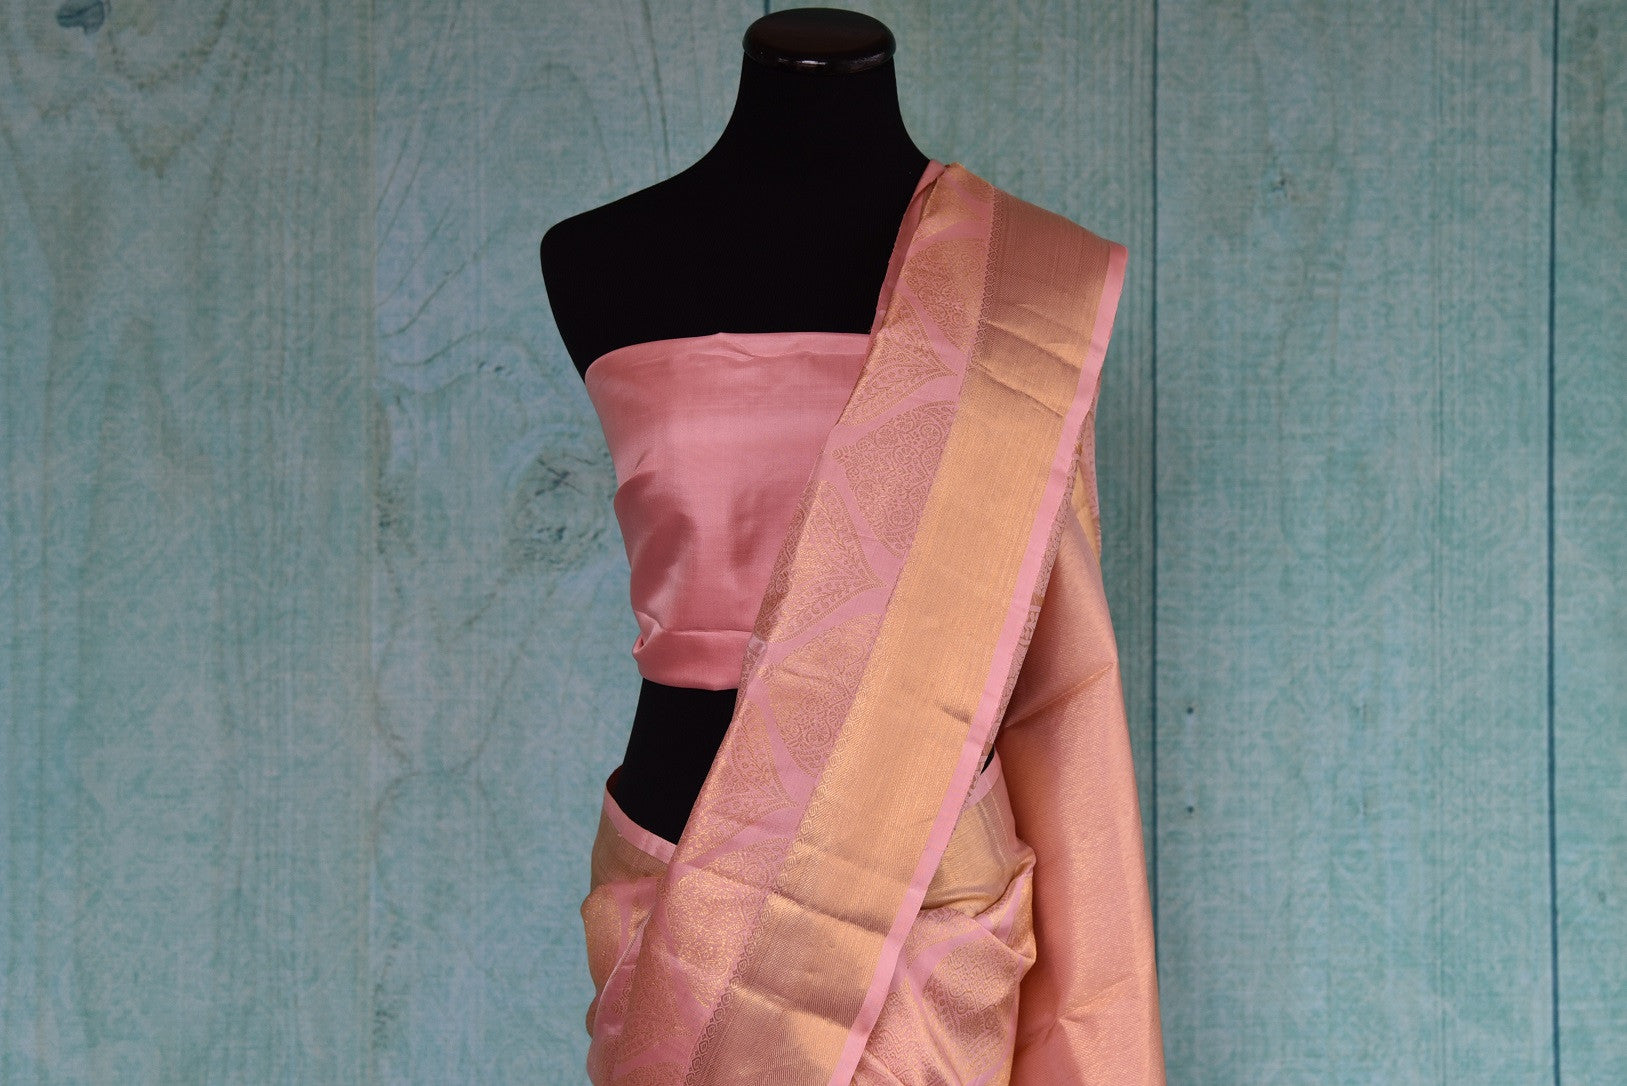 90D411 Soft pink kanjivaram saree with a dull golden pattern & border. This ethnic saree, available at Pure Elegance, is a lovely pick for Indian weddings and functions.